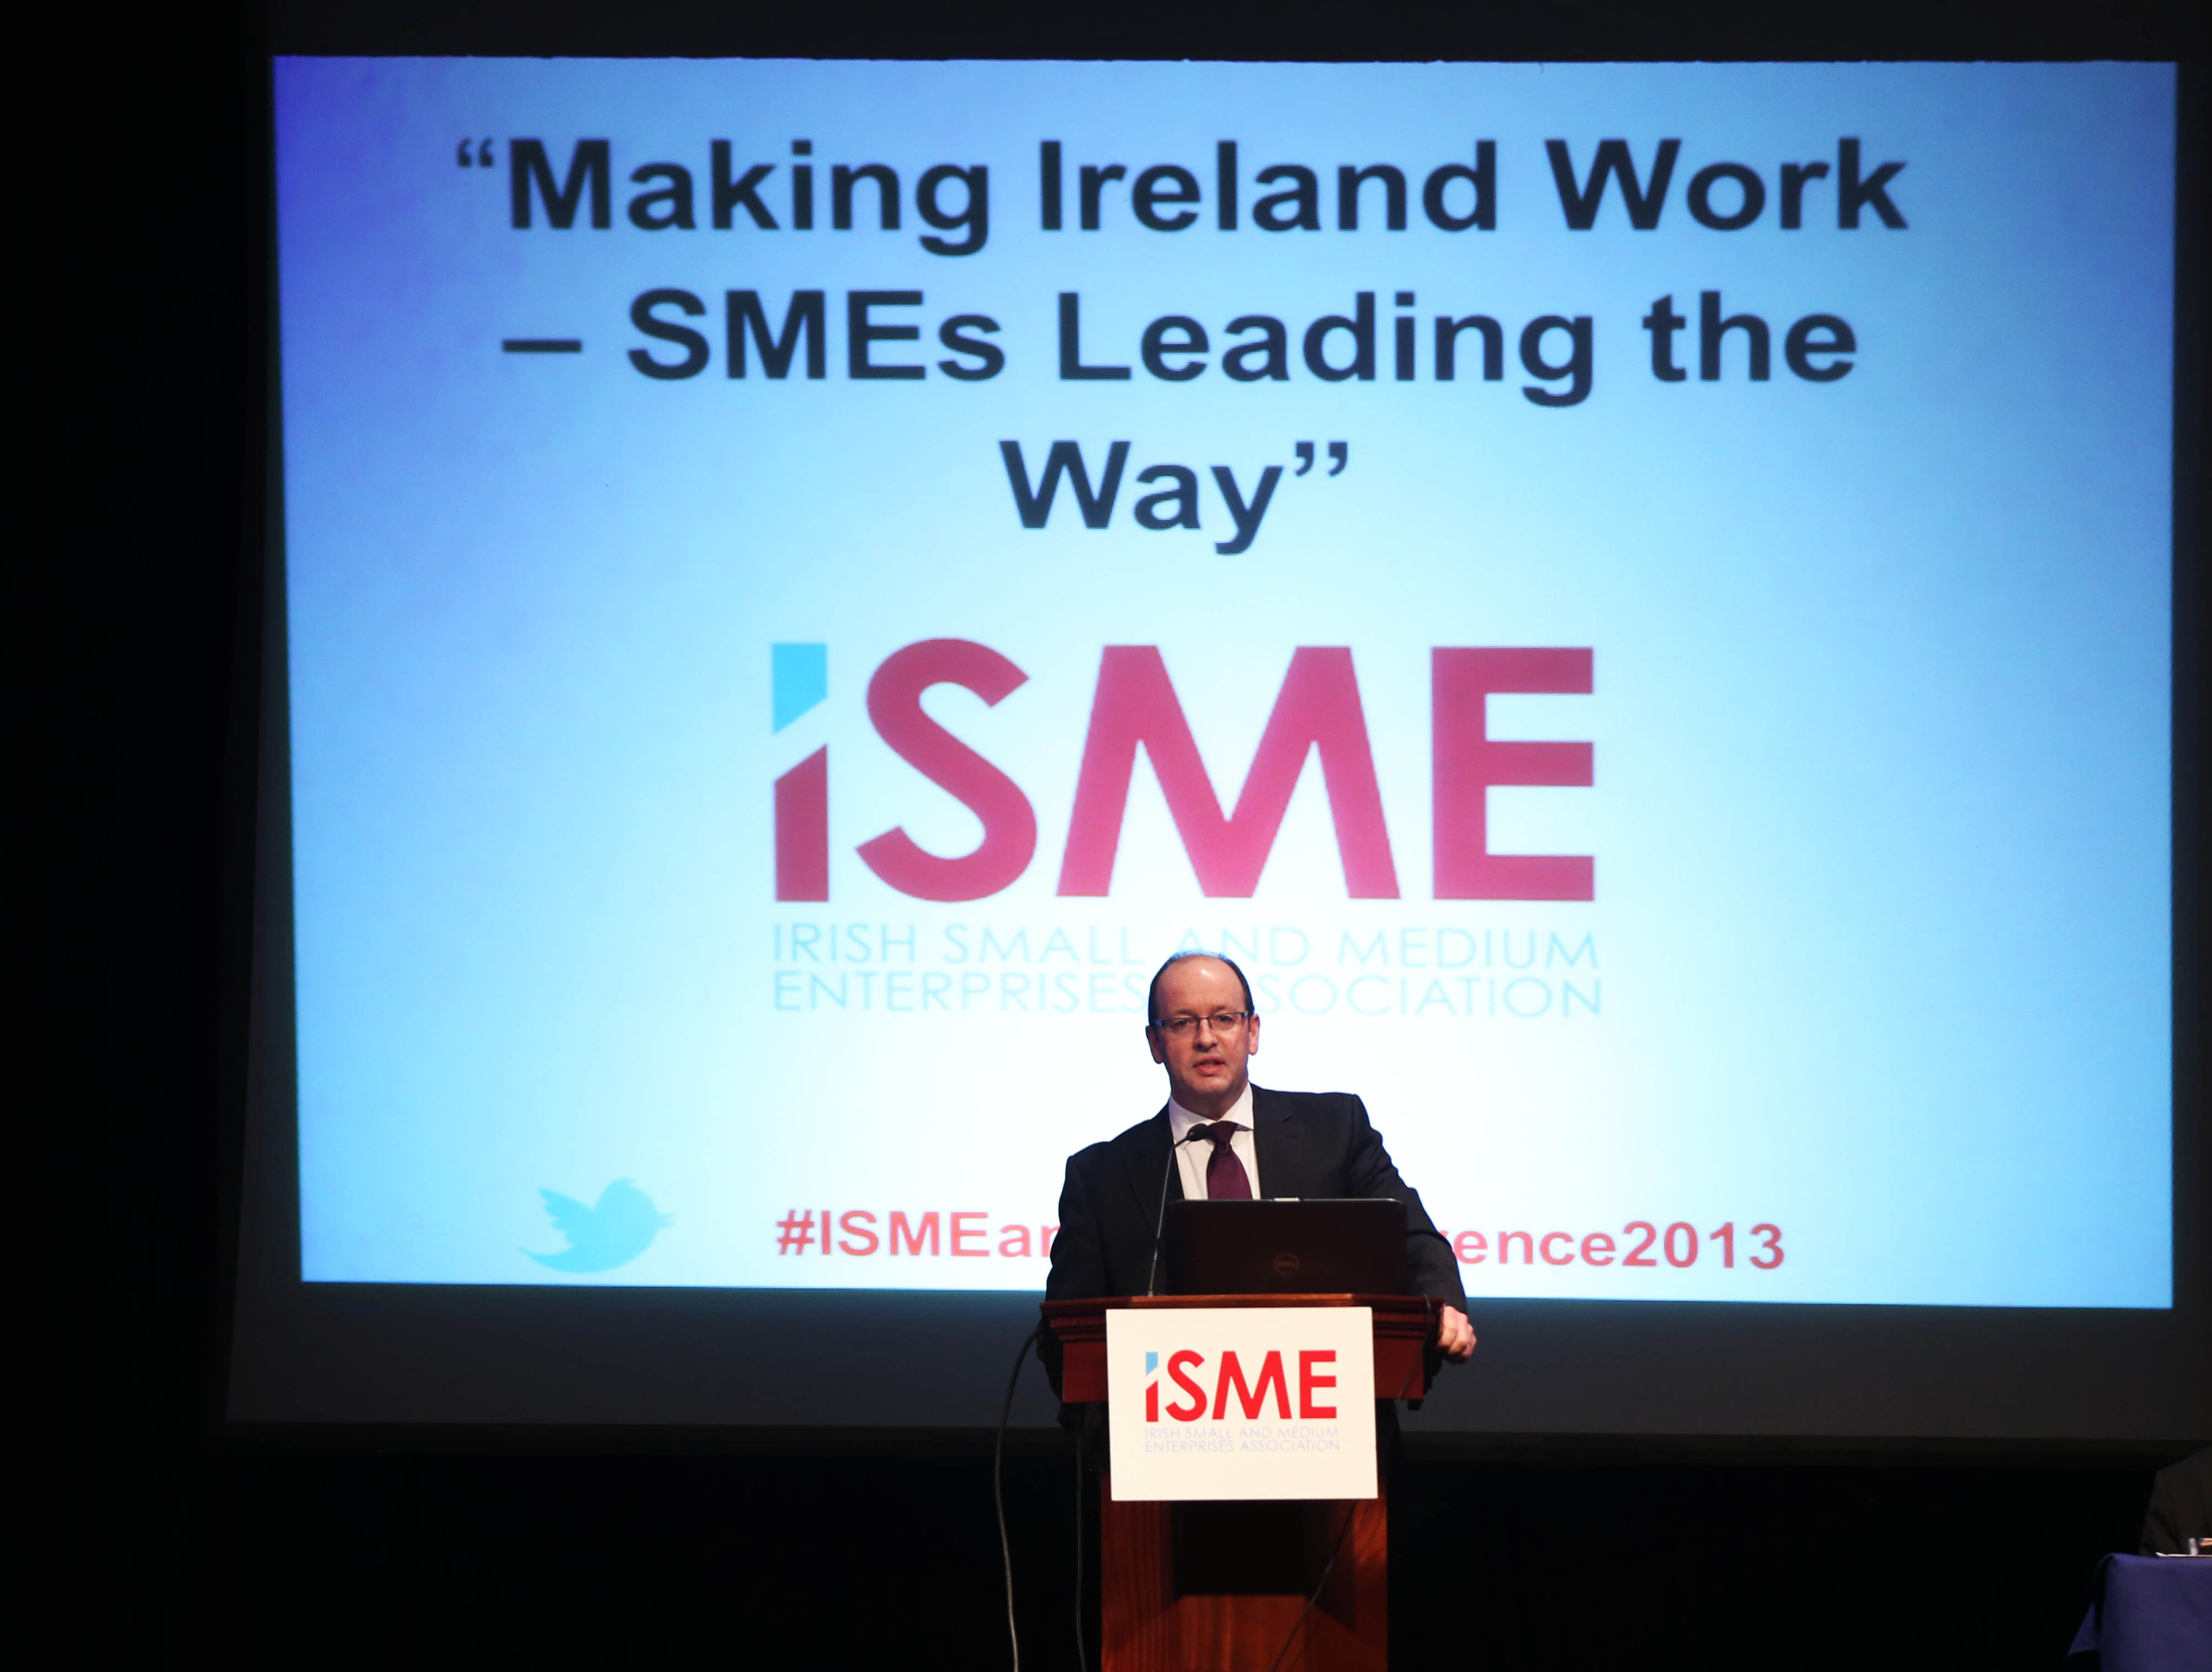 NO REPRO FEE. 8/11/2013. Eamonn Kielty Chairperson Of  Irish The Small And Medium Enterprises Association (ISME) Speaking At The  ISME Annual Conference In The RDS.Photo:Leon Farrell/Photocall Ireland.